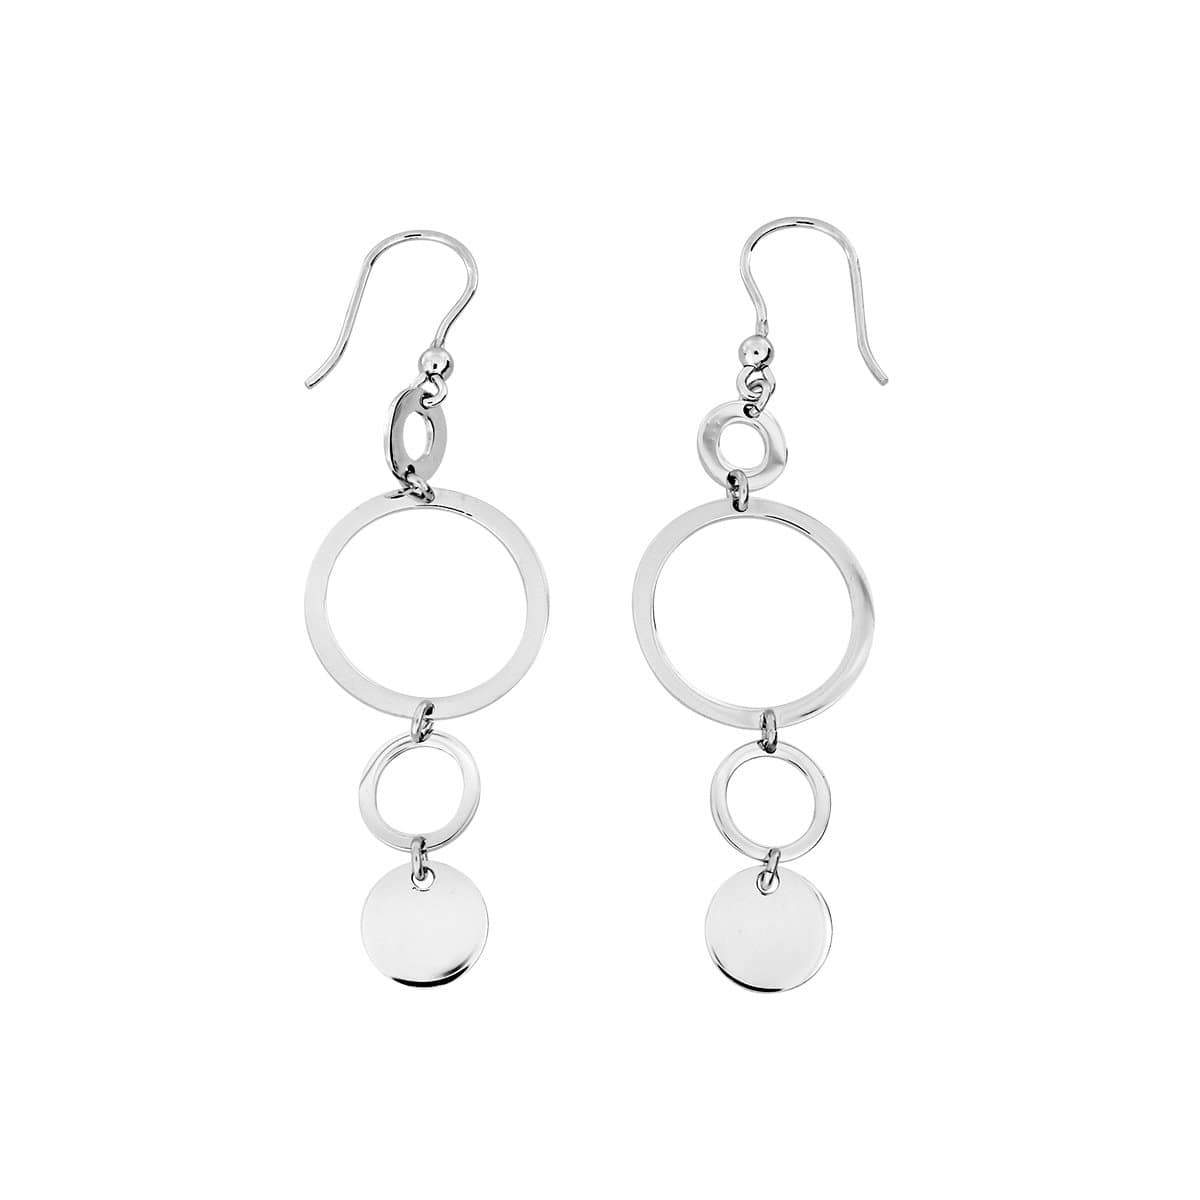 Coniston Silver Drop Earrings